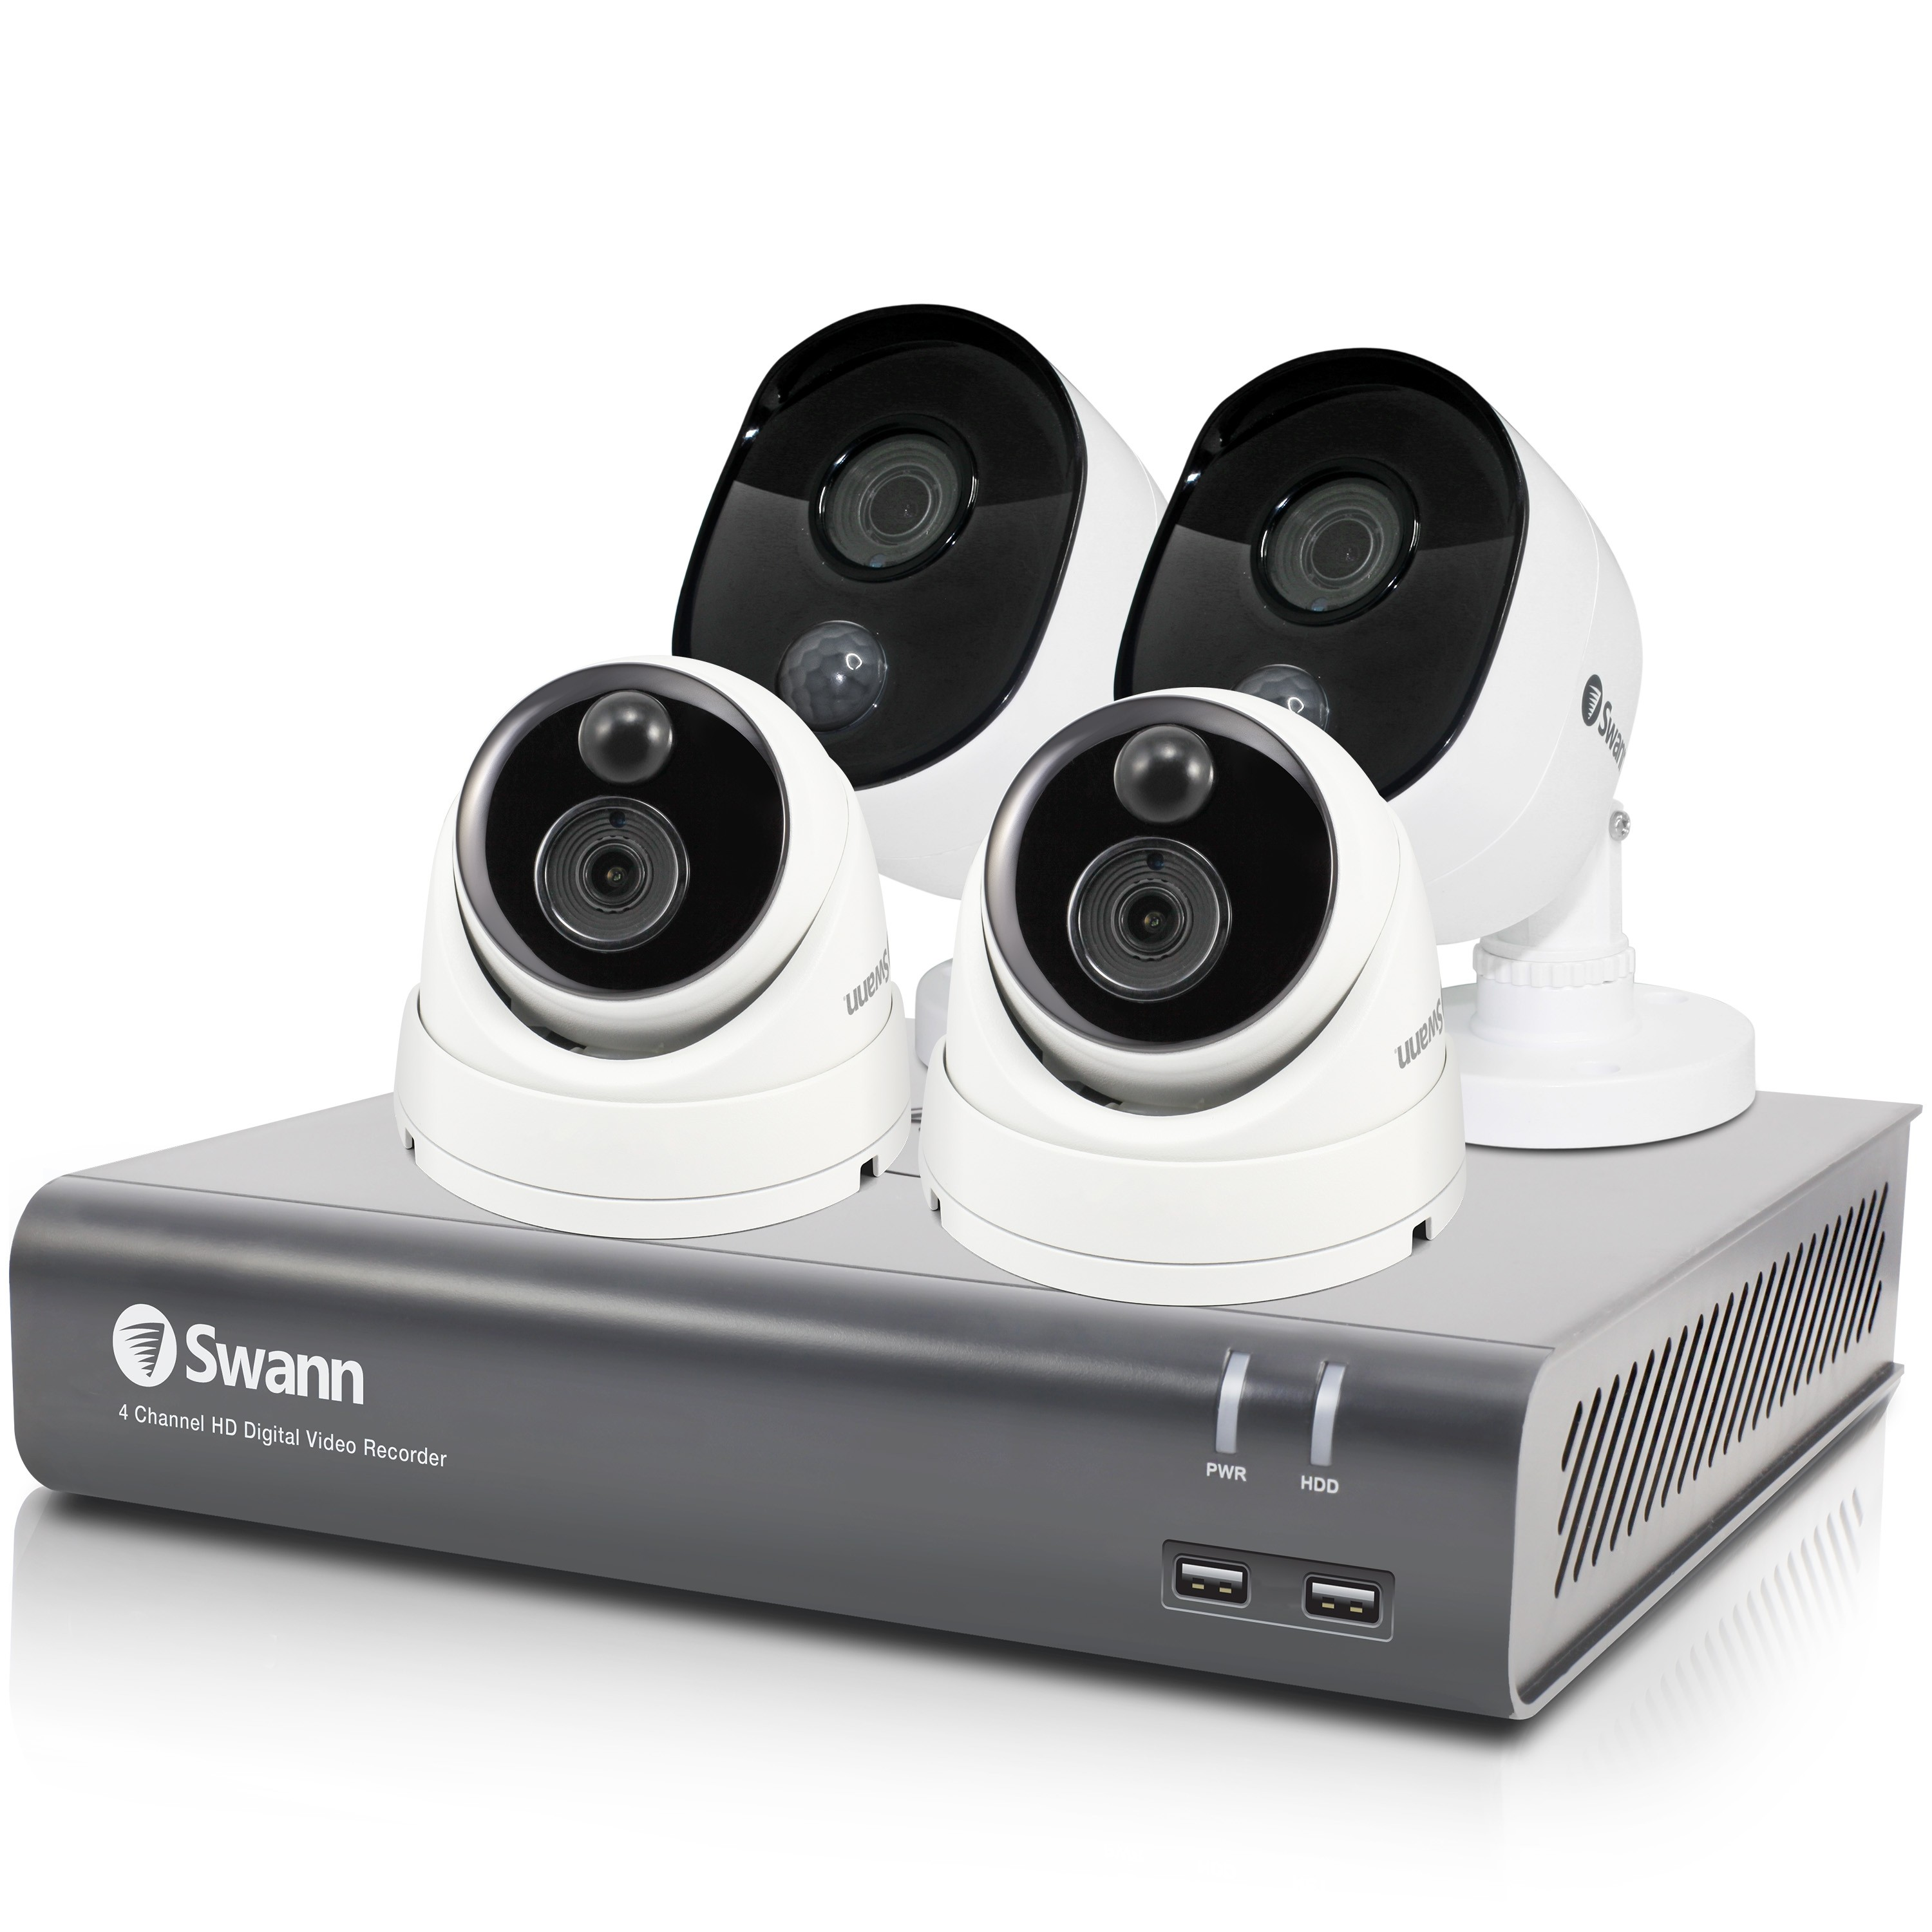 SWDVK-445802B2DV Swann 4 Channel Security System: 1080p Full HD DVR-4580 with 1TB HDD & 4 x 1080p Thermal Sensing Cameras -